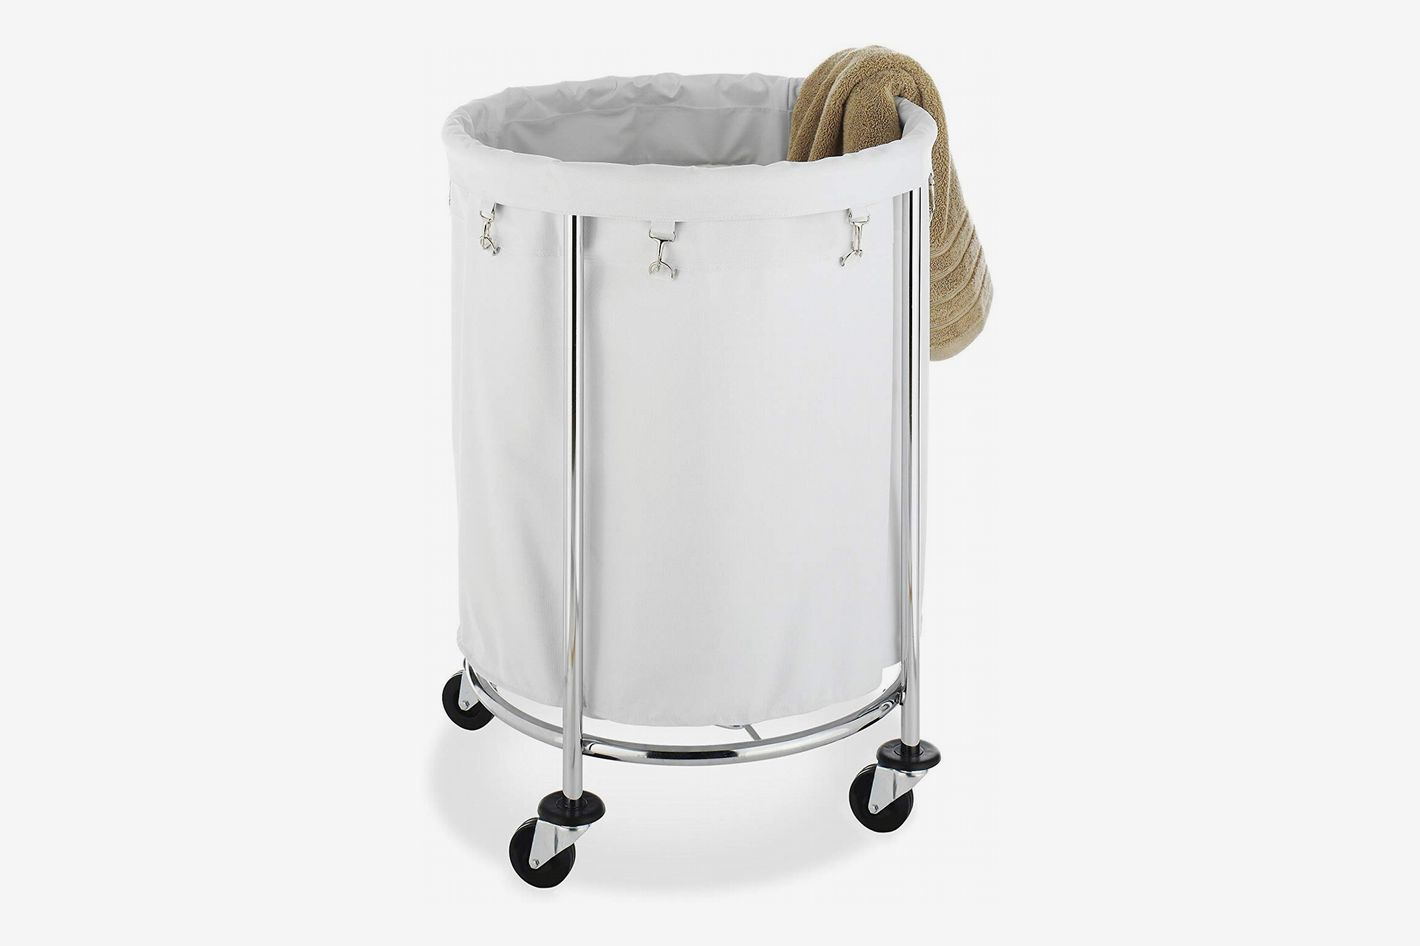 18 best laundry baskets and hampers 2019